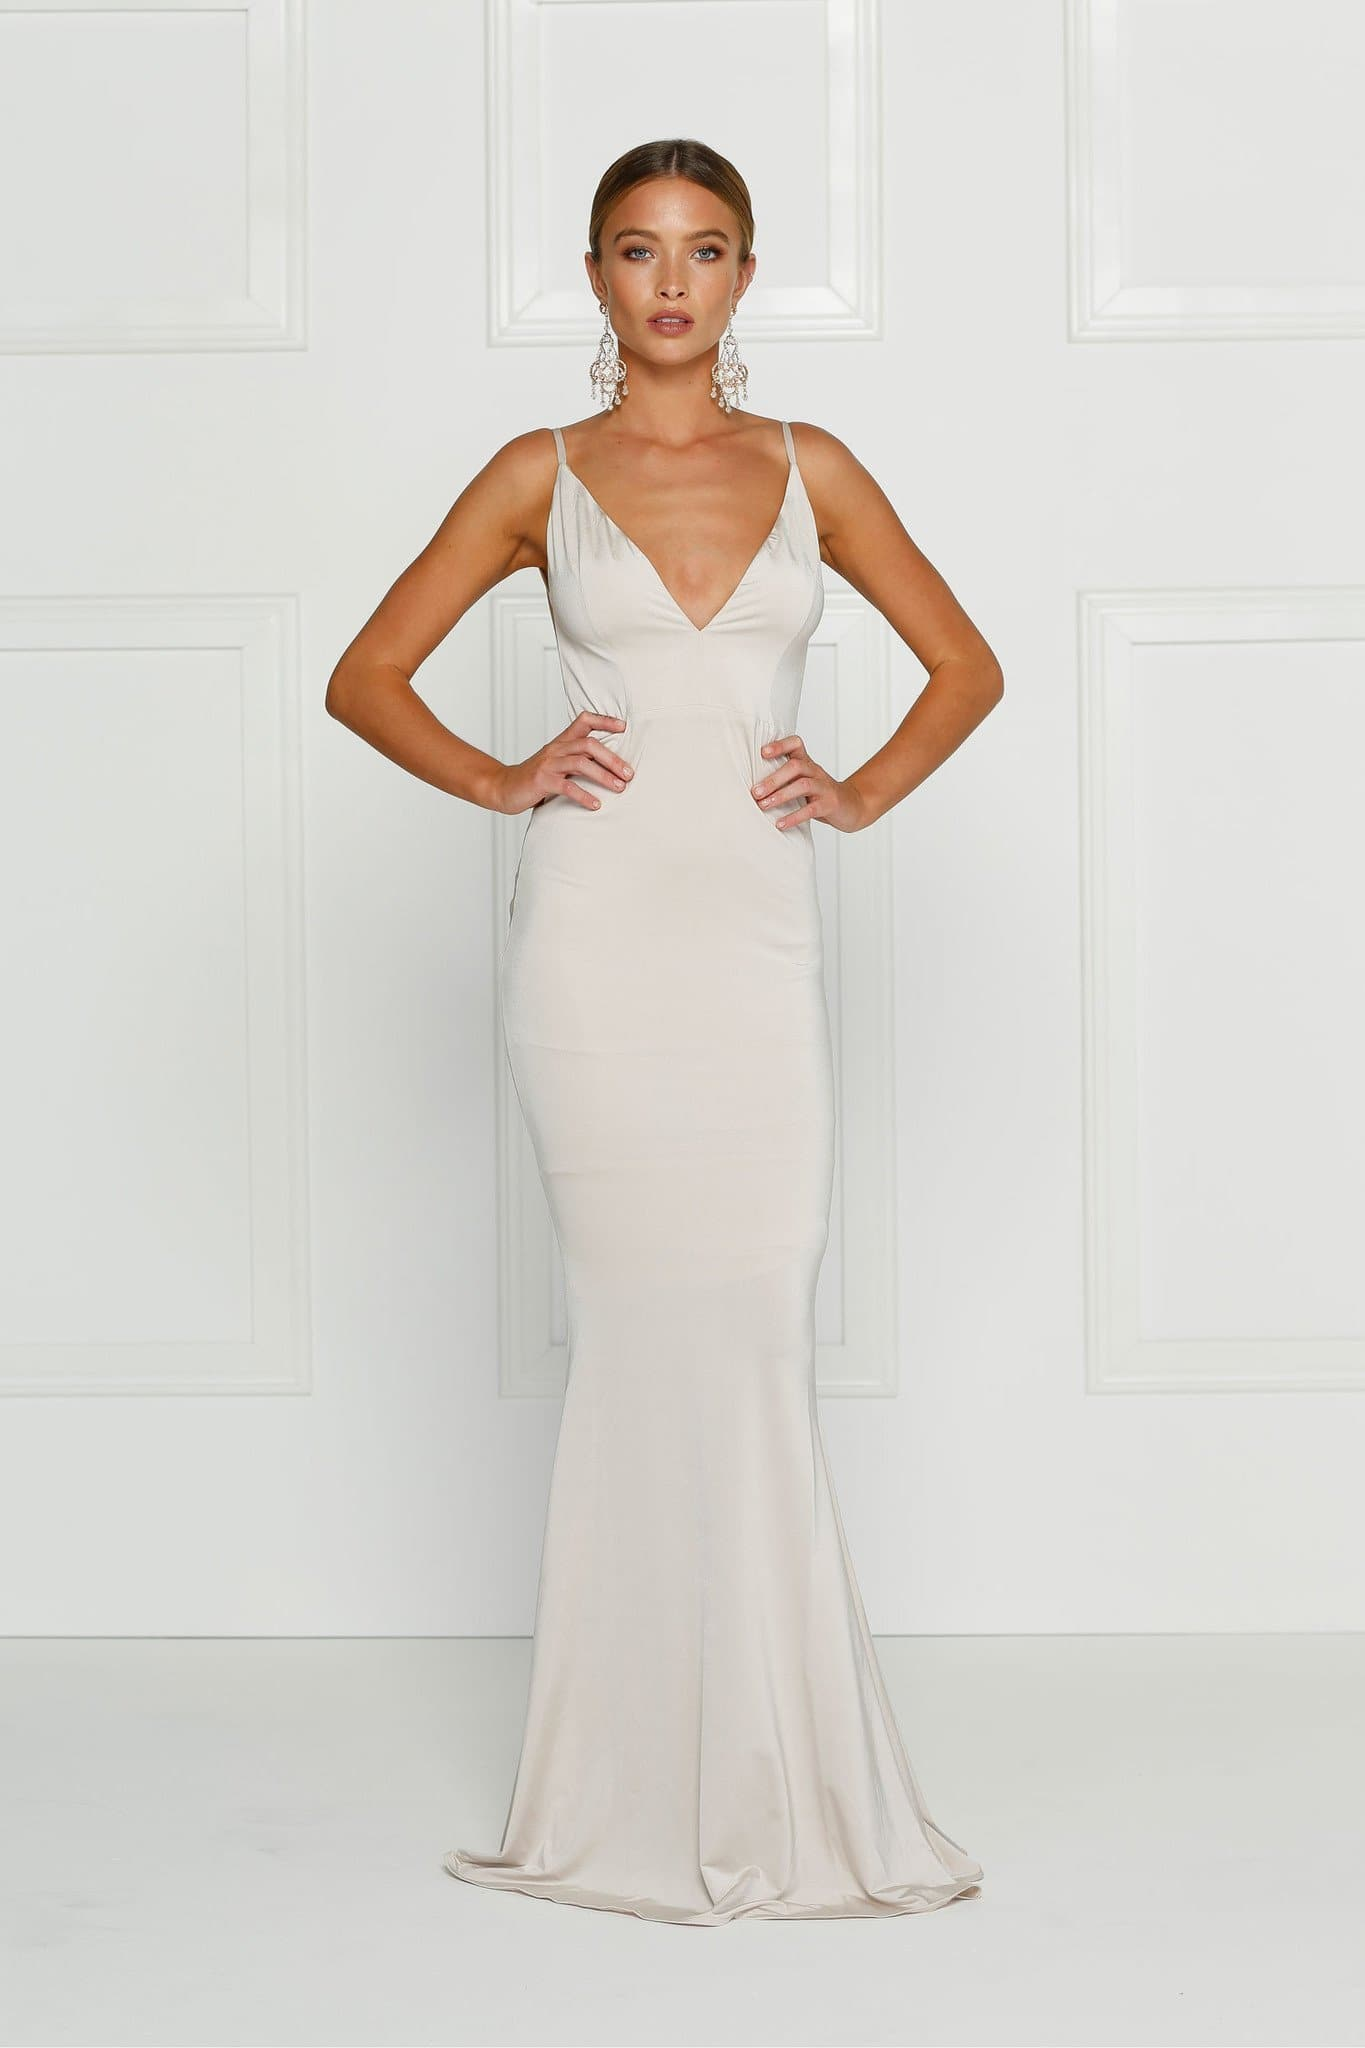 Penelope - Oyster Jersey Gown with Low Back   Plunge Neckline – A N Luxe  Label 0d82fd321